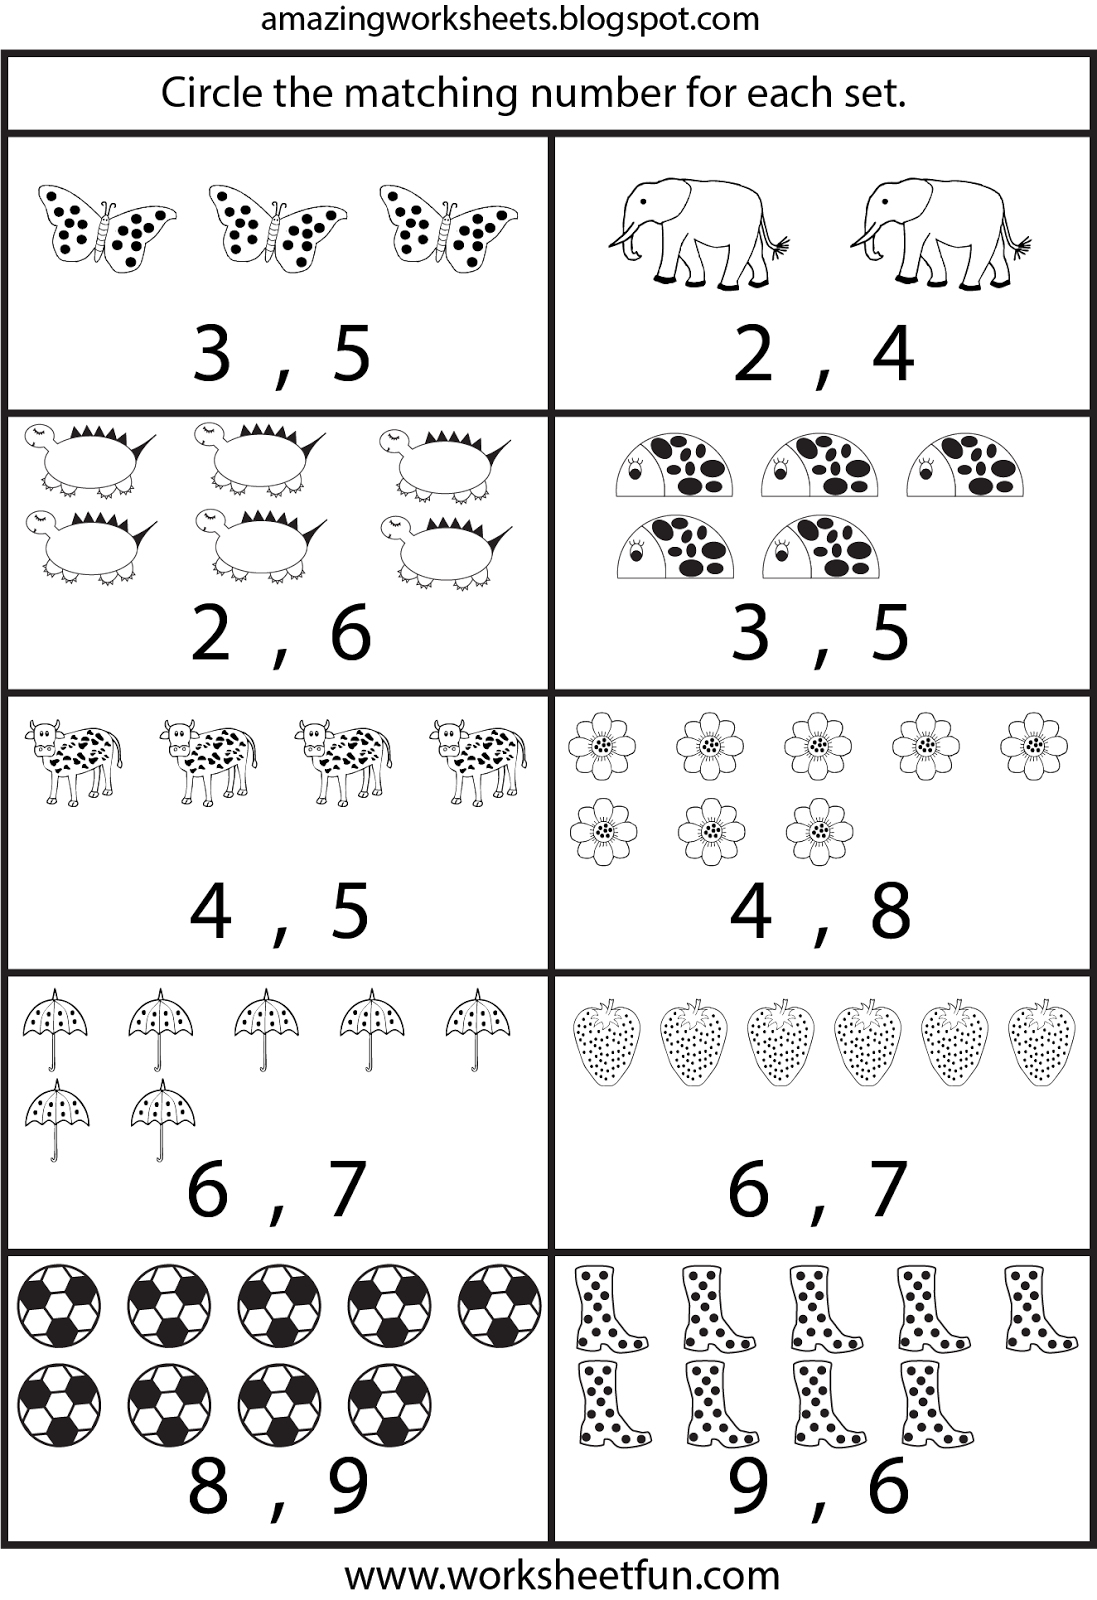 Pre K Learning Worksheets – With Printing Sheets For Kindergarten | Counting Printable Worksheets For Kindergarten